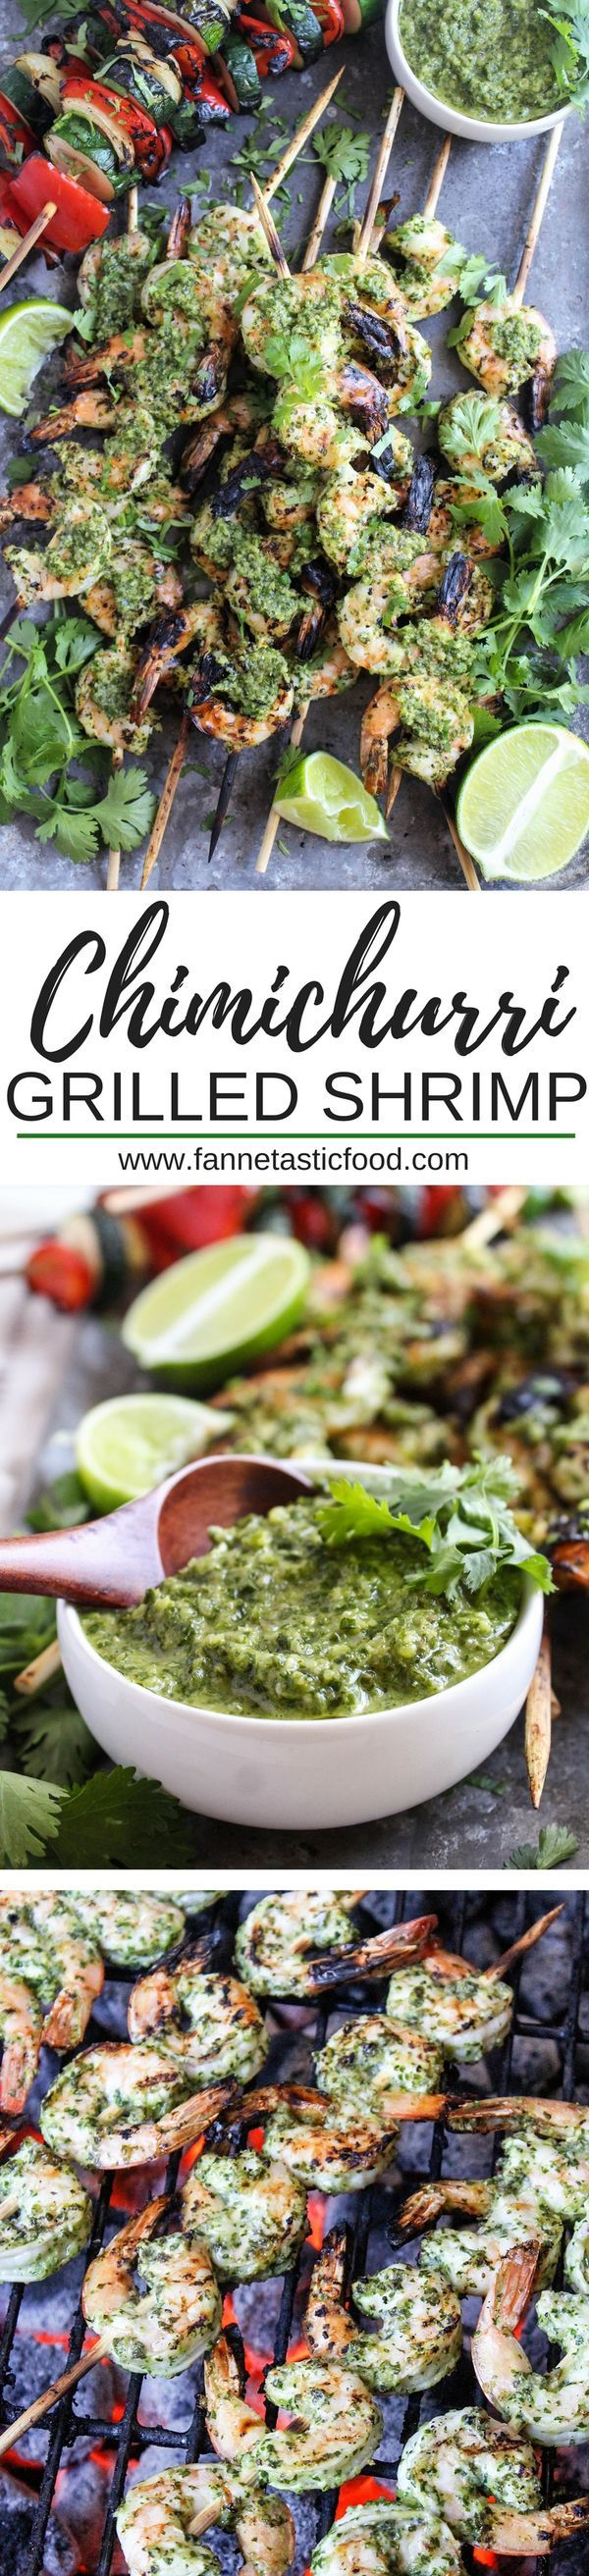 This Chimichurri Grilled Shrimp Recipe is perfect for your Fourth of July celebration - it's easy to make for a crowd, so flavorful and delicious, and the sauce can be made in advance!   shrimp kebab recipe   healthy fourth of july recipes   shrimp skewer recipe   healthy grilled shrimp  